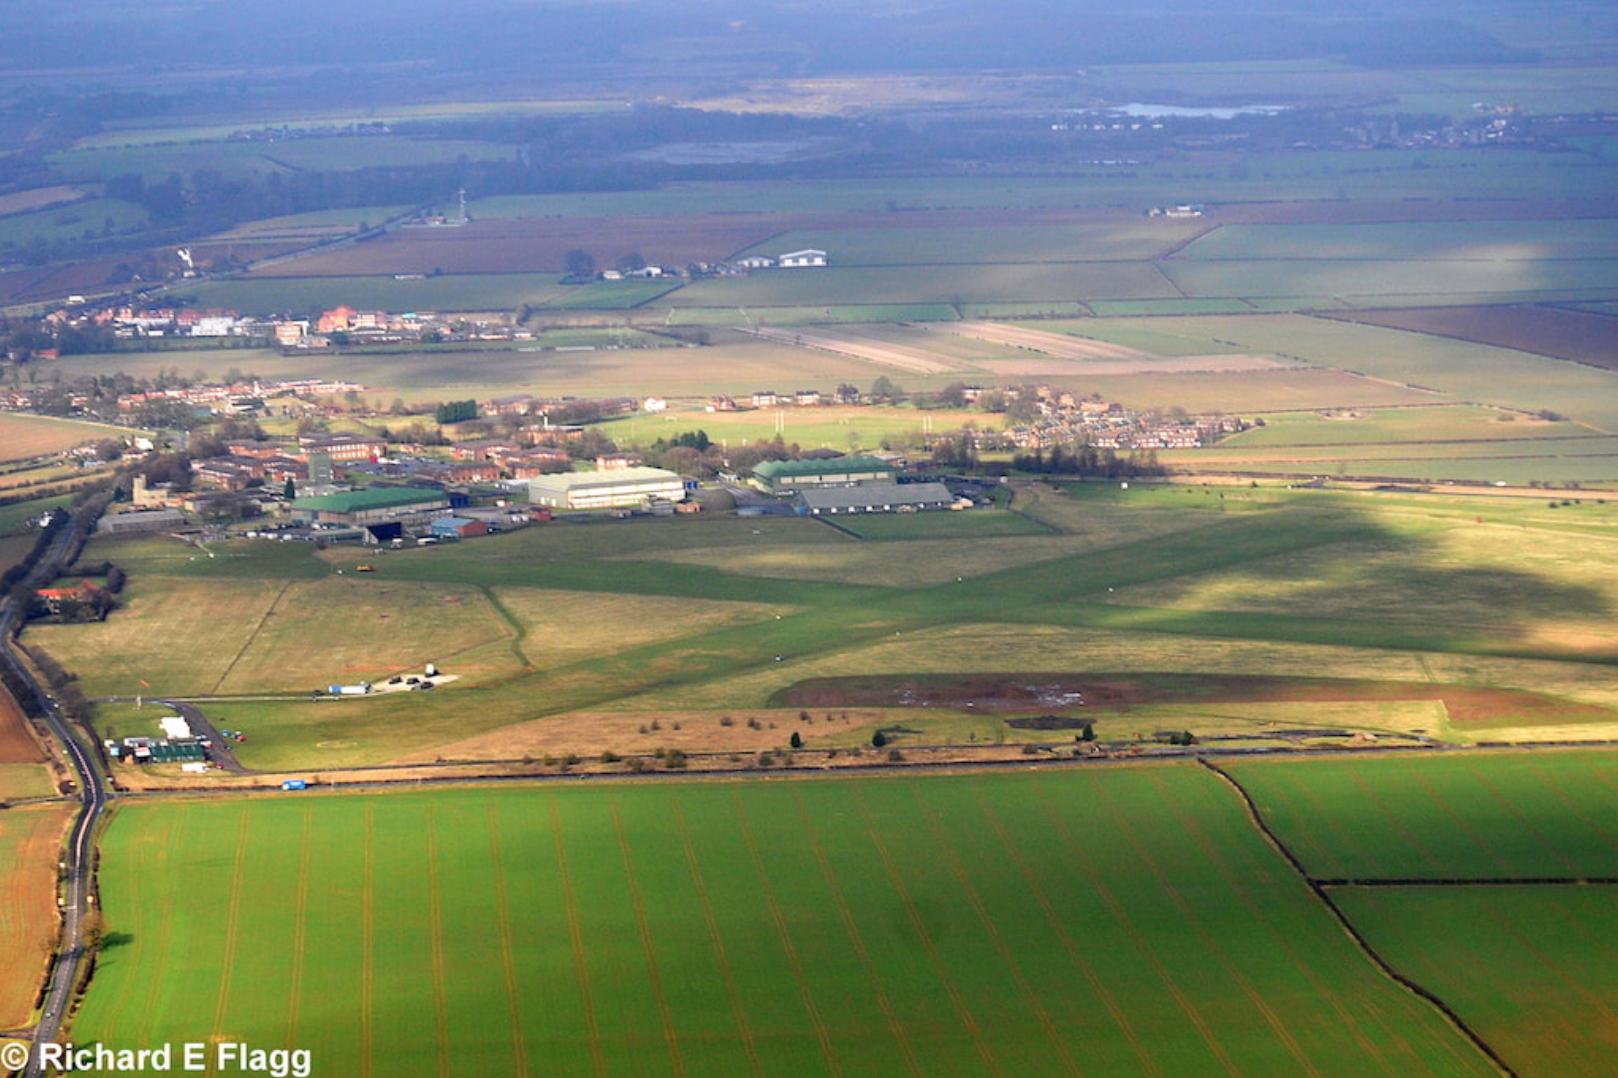 002Aerial View of Kirton in Lindsey Airfield - 12 February 2011.png